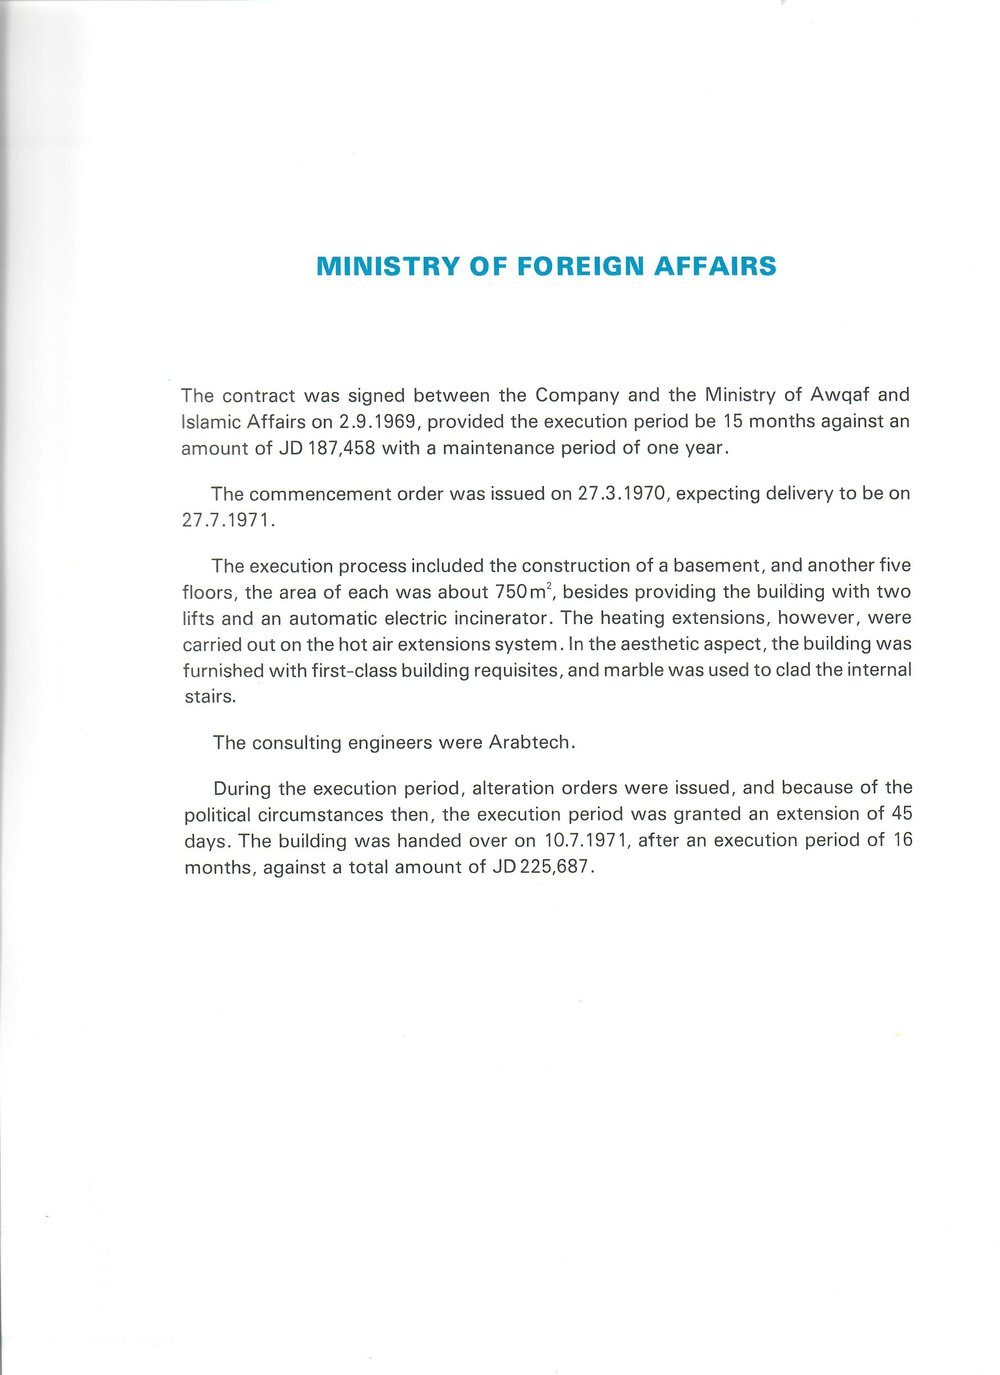 ministry of foreign affairs texteng.jpeg